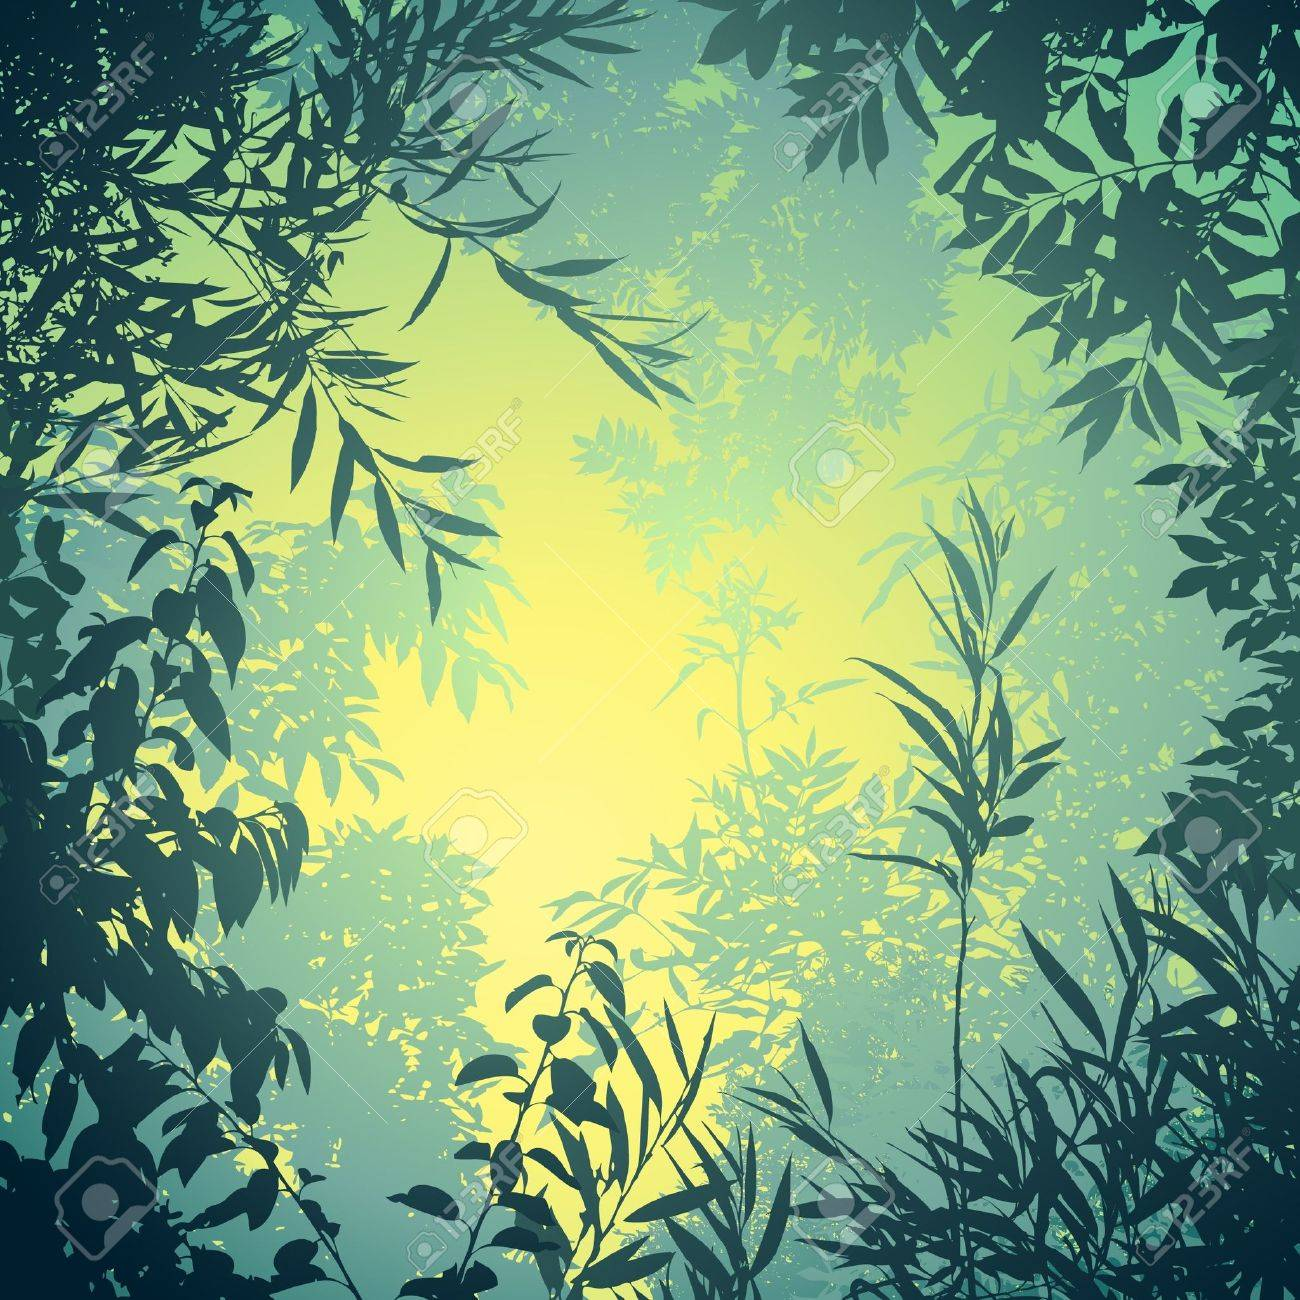 A Floral Background with Trees and Leaves Stock Vector - 10291215